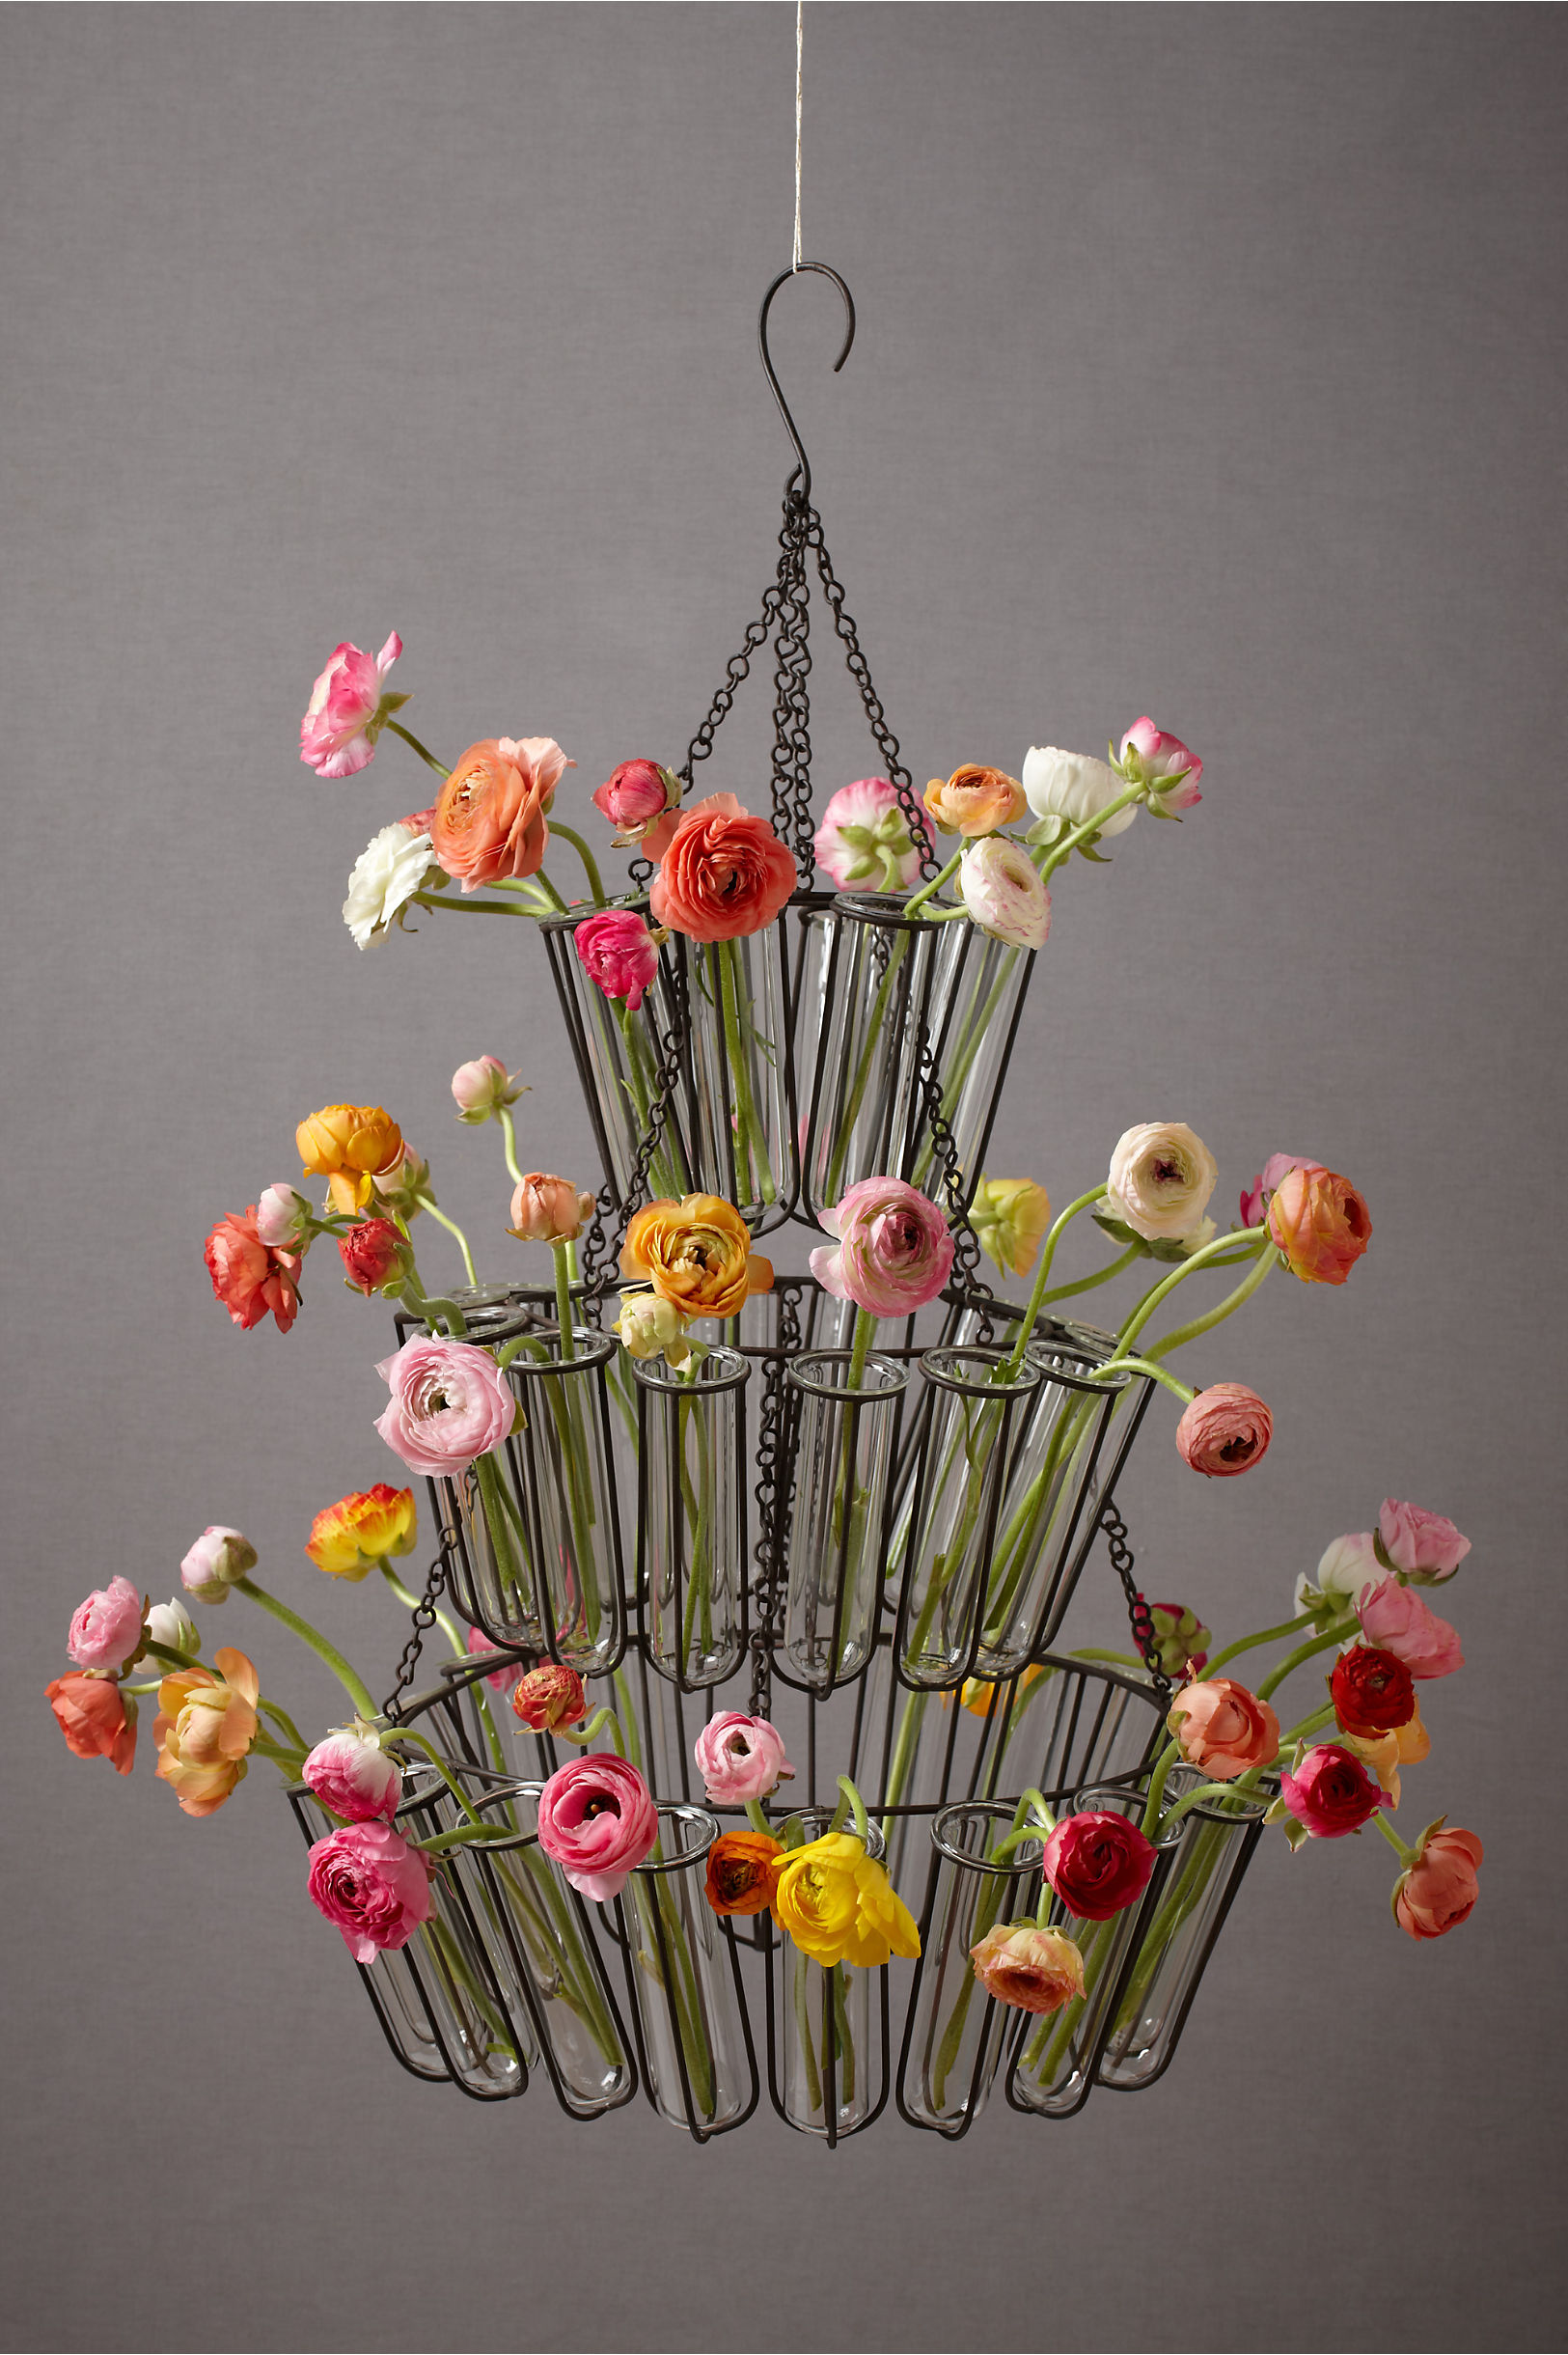 Spring-wedding-decor-anthropology-chandelier-with-bright-wedding-flowers.original